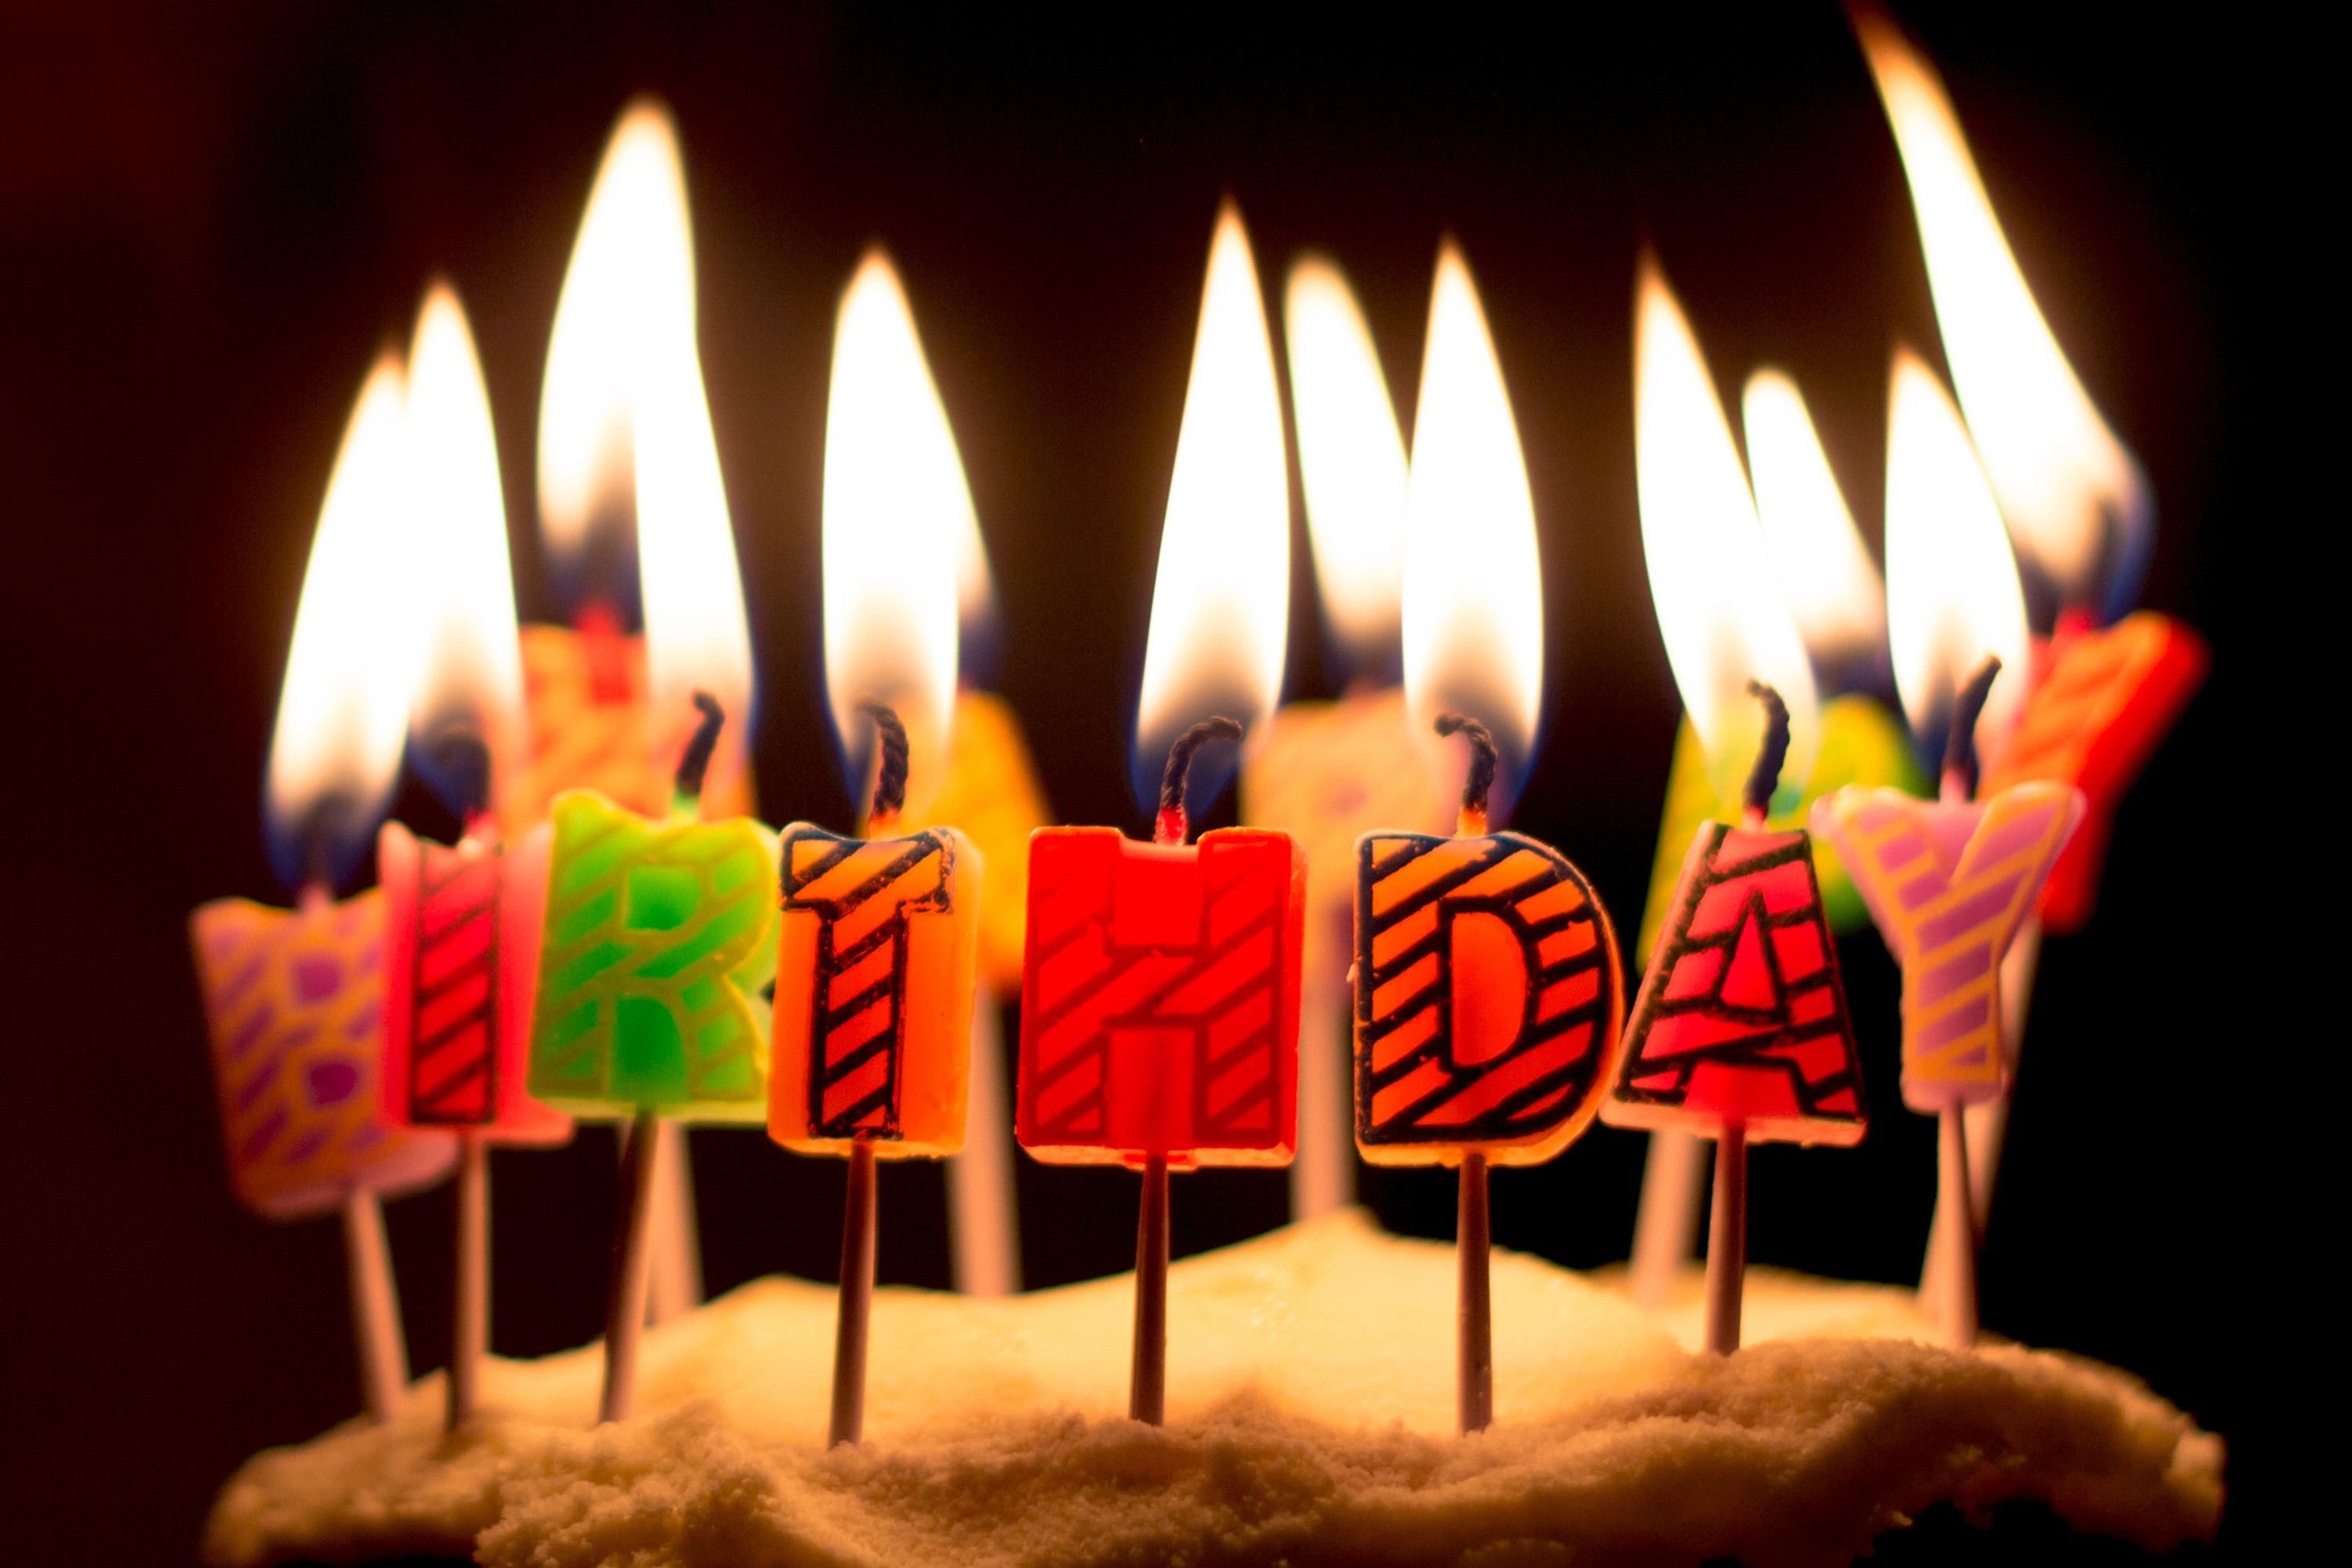 Birthday Cake Images Free Download Birthday Cake Candles Free Photo Iso Republic